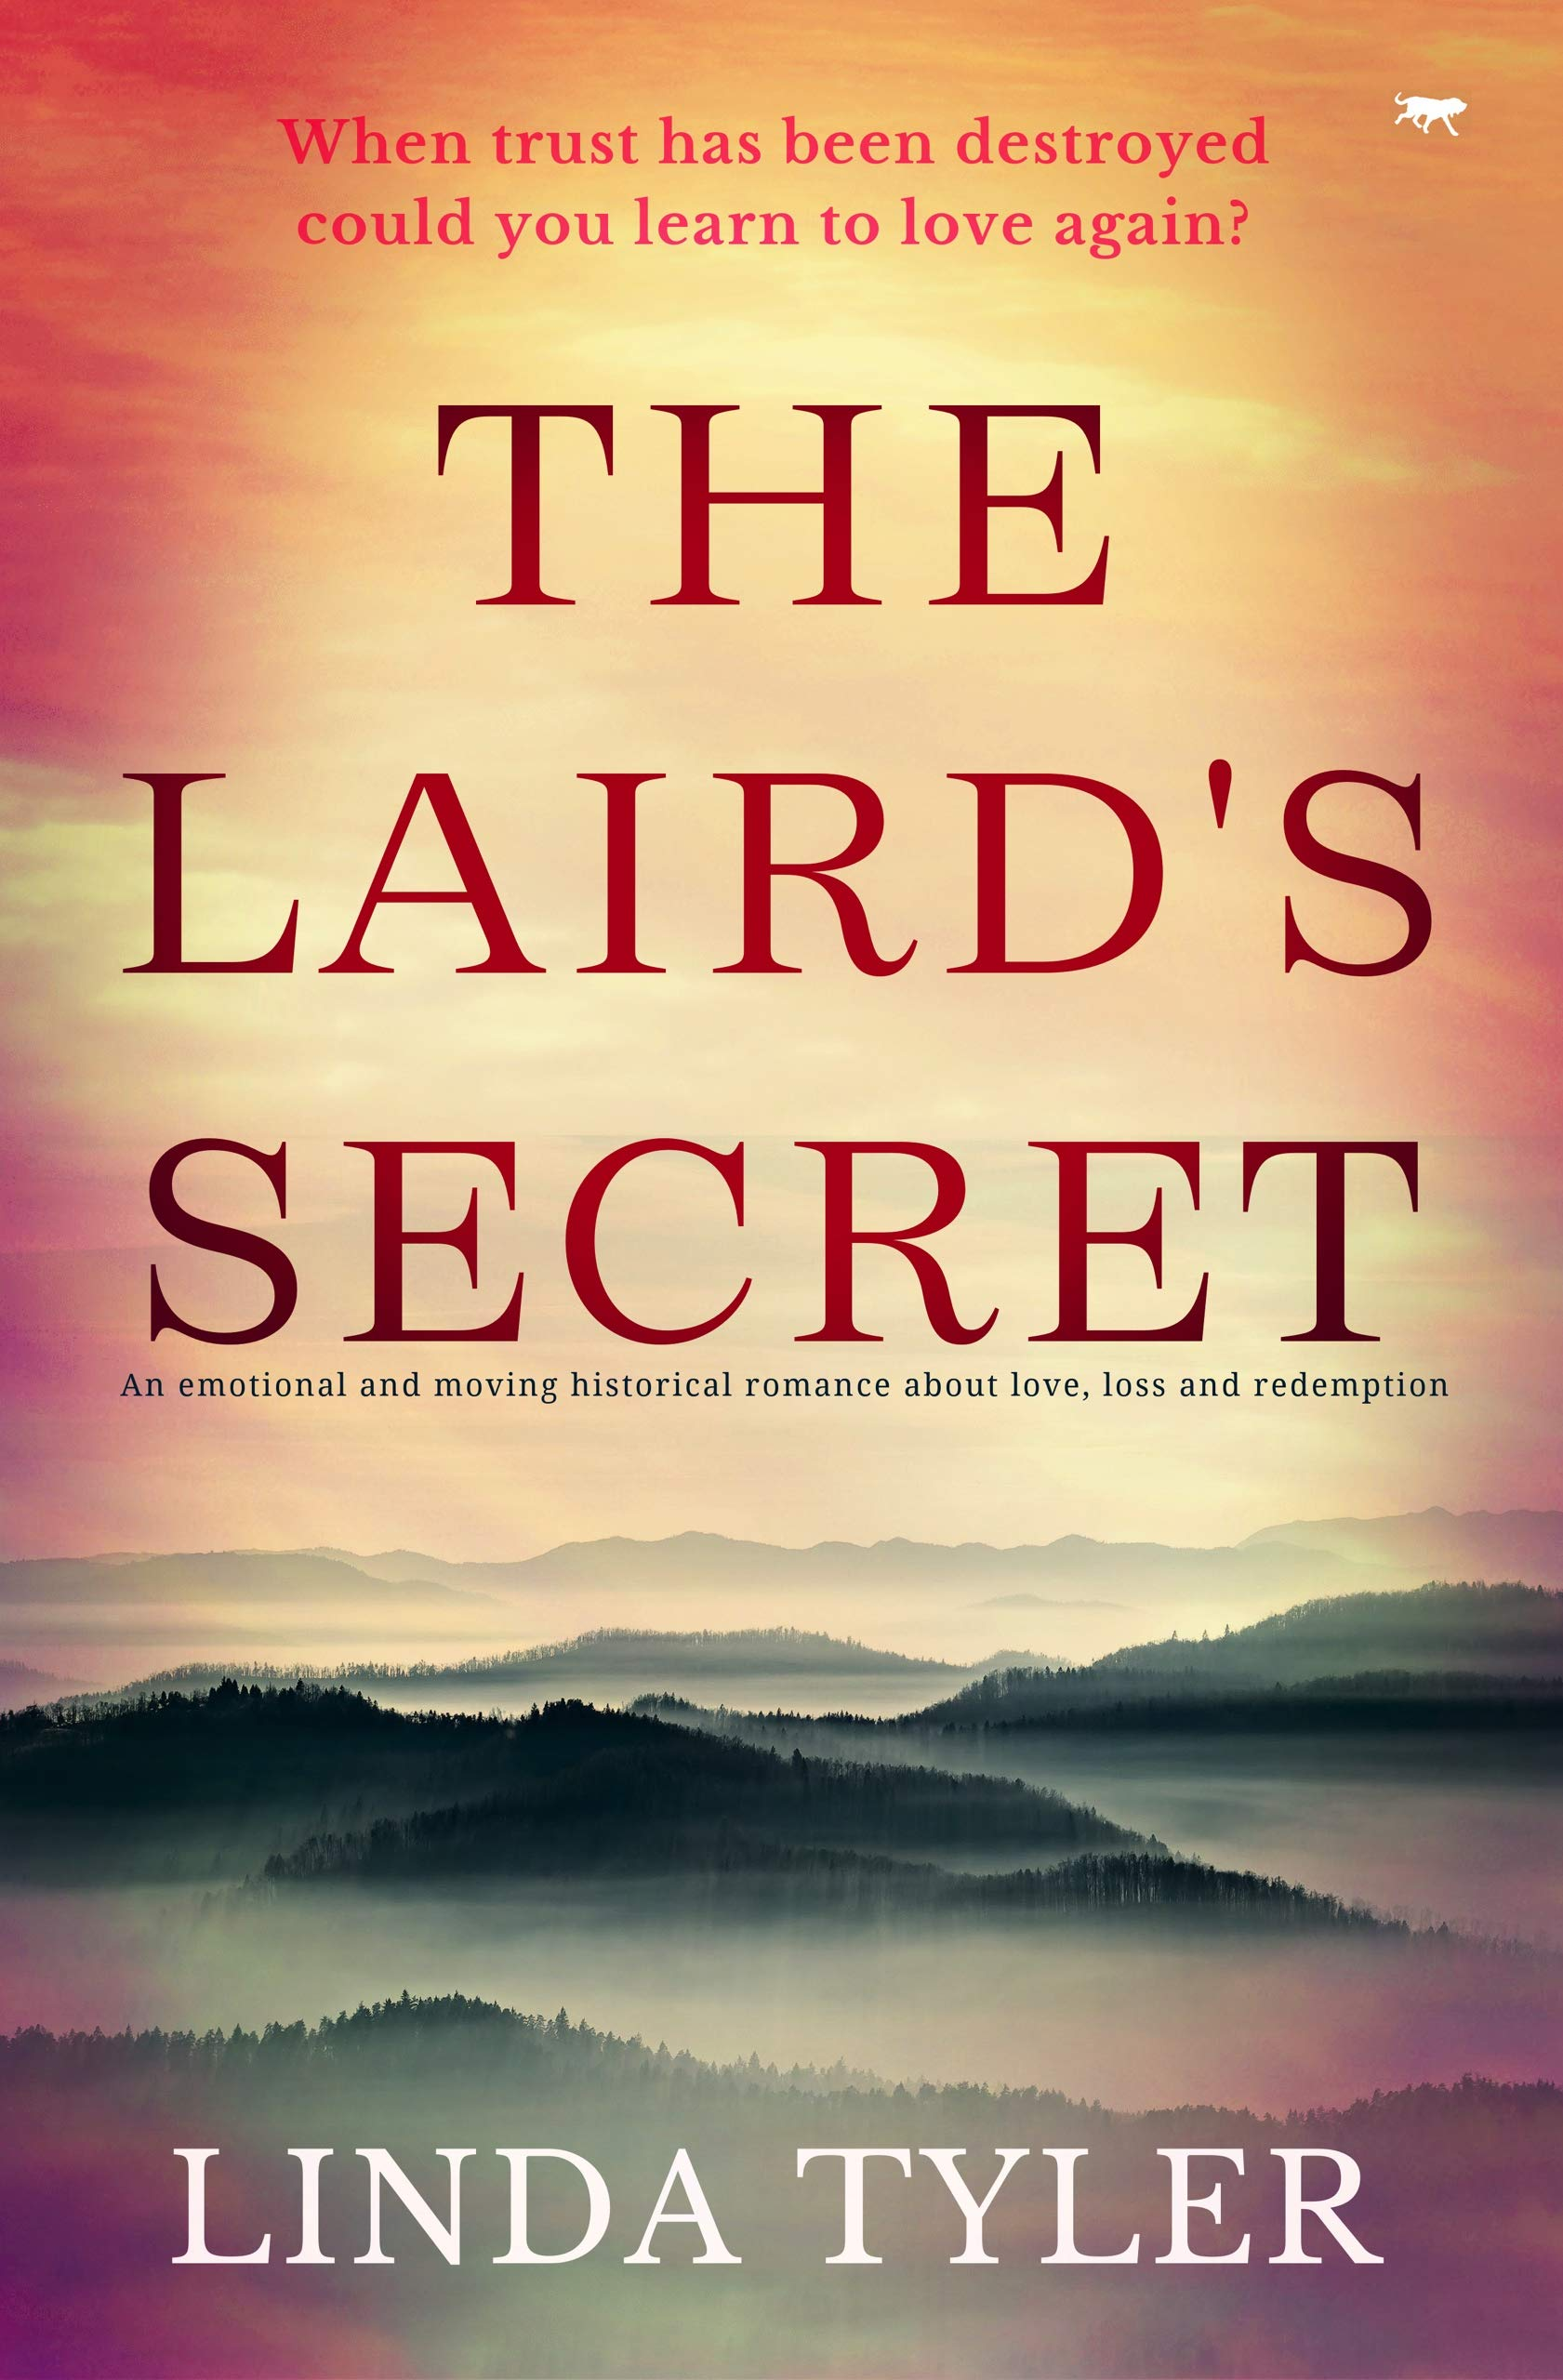 The Laird's Secret: an emotional and moving historical romance about love, loss and redemption